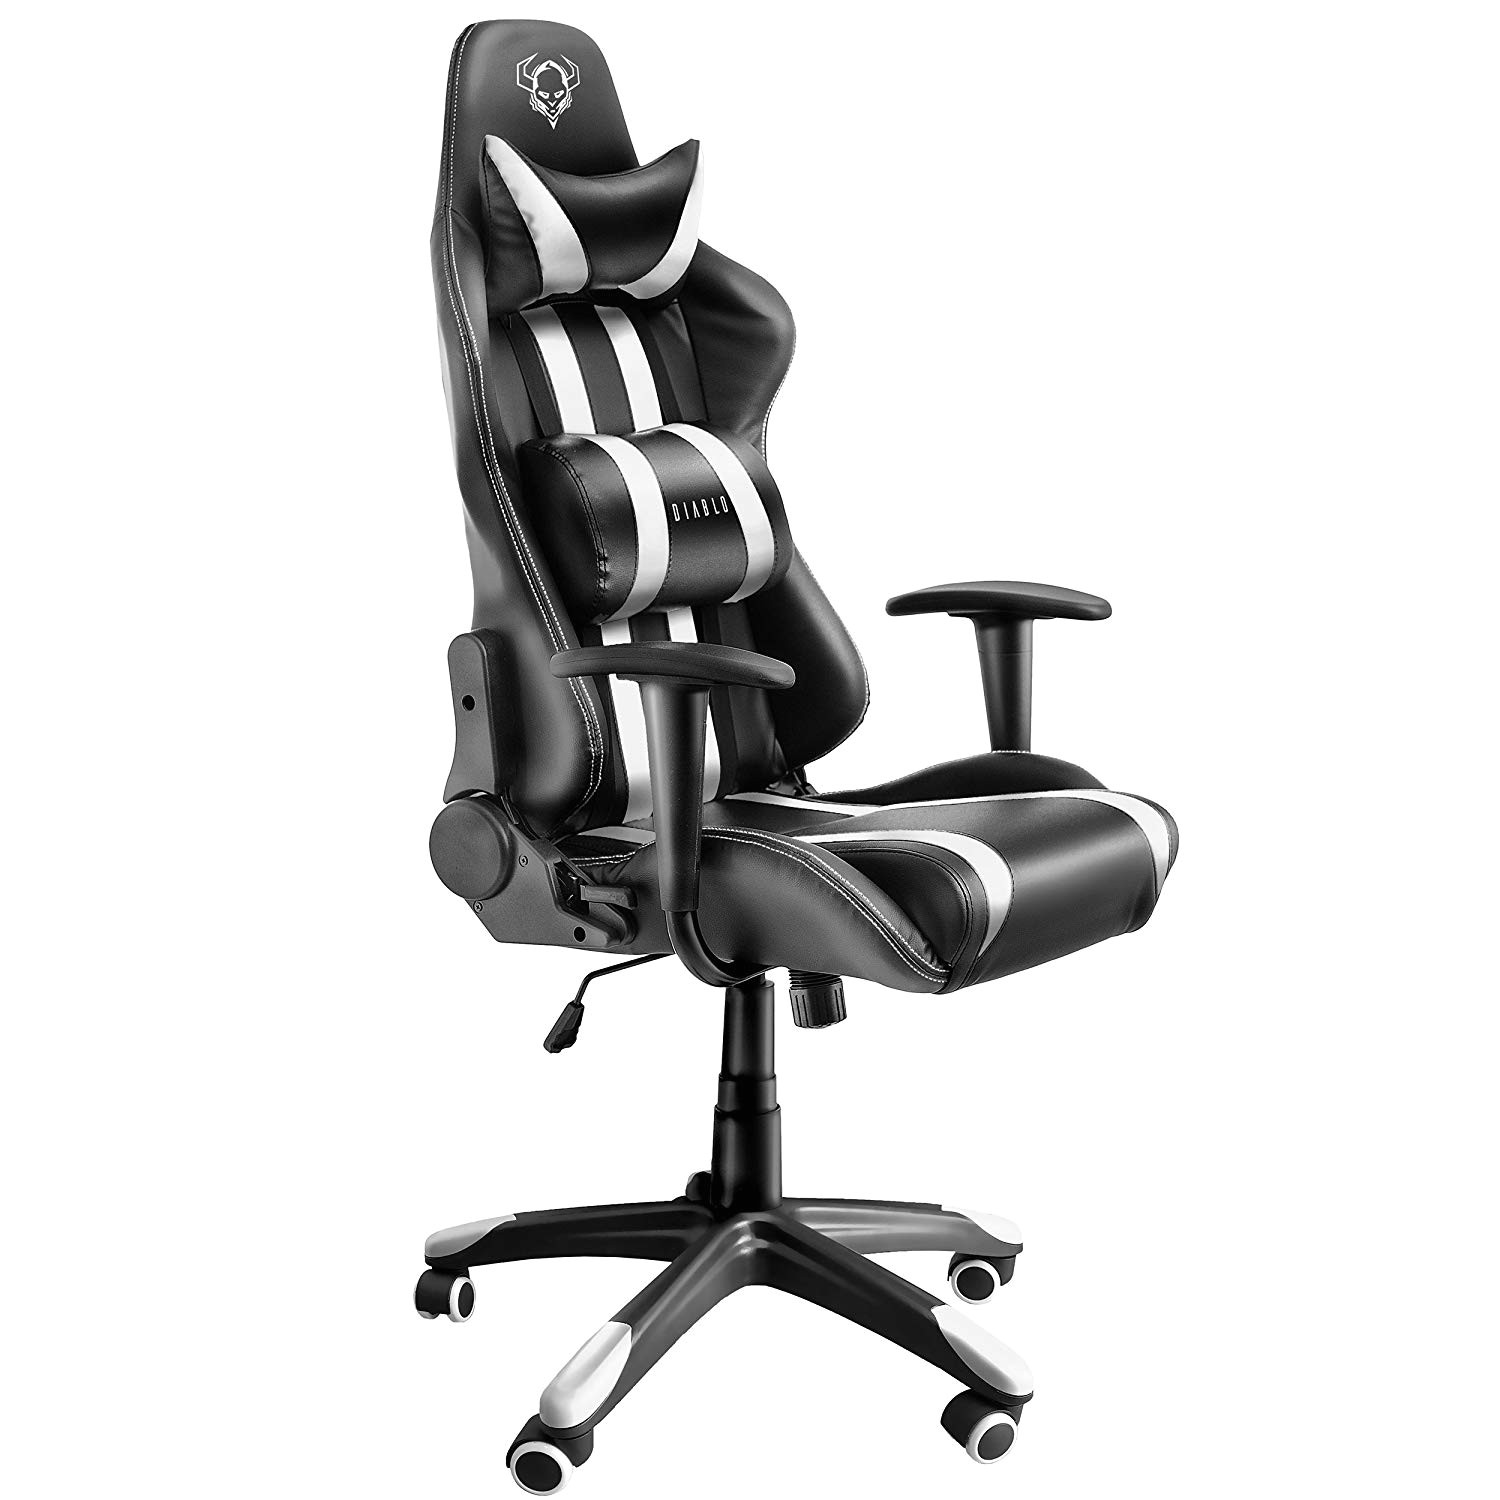 diablo x one gaming office chair lumbar cushions tilt function leatherette color selection black white 51 x 75 x 129 cm amazon co uk kitchen home